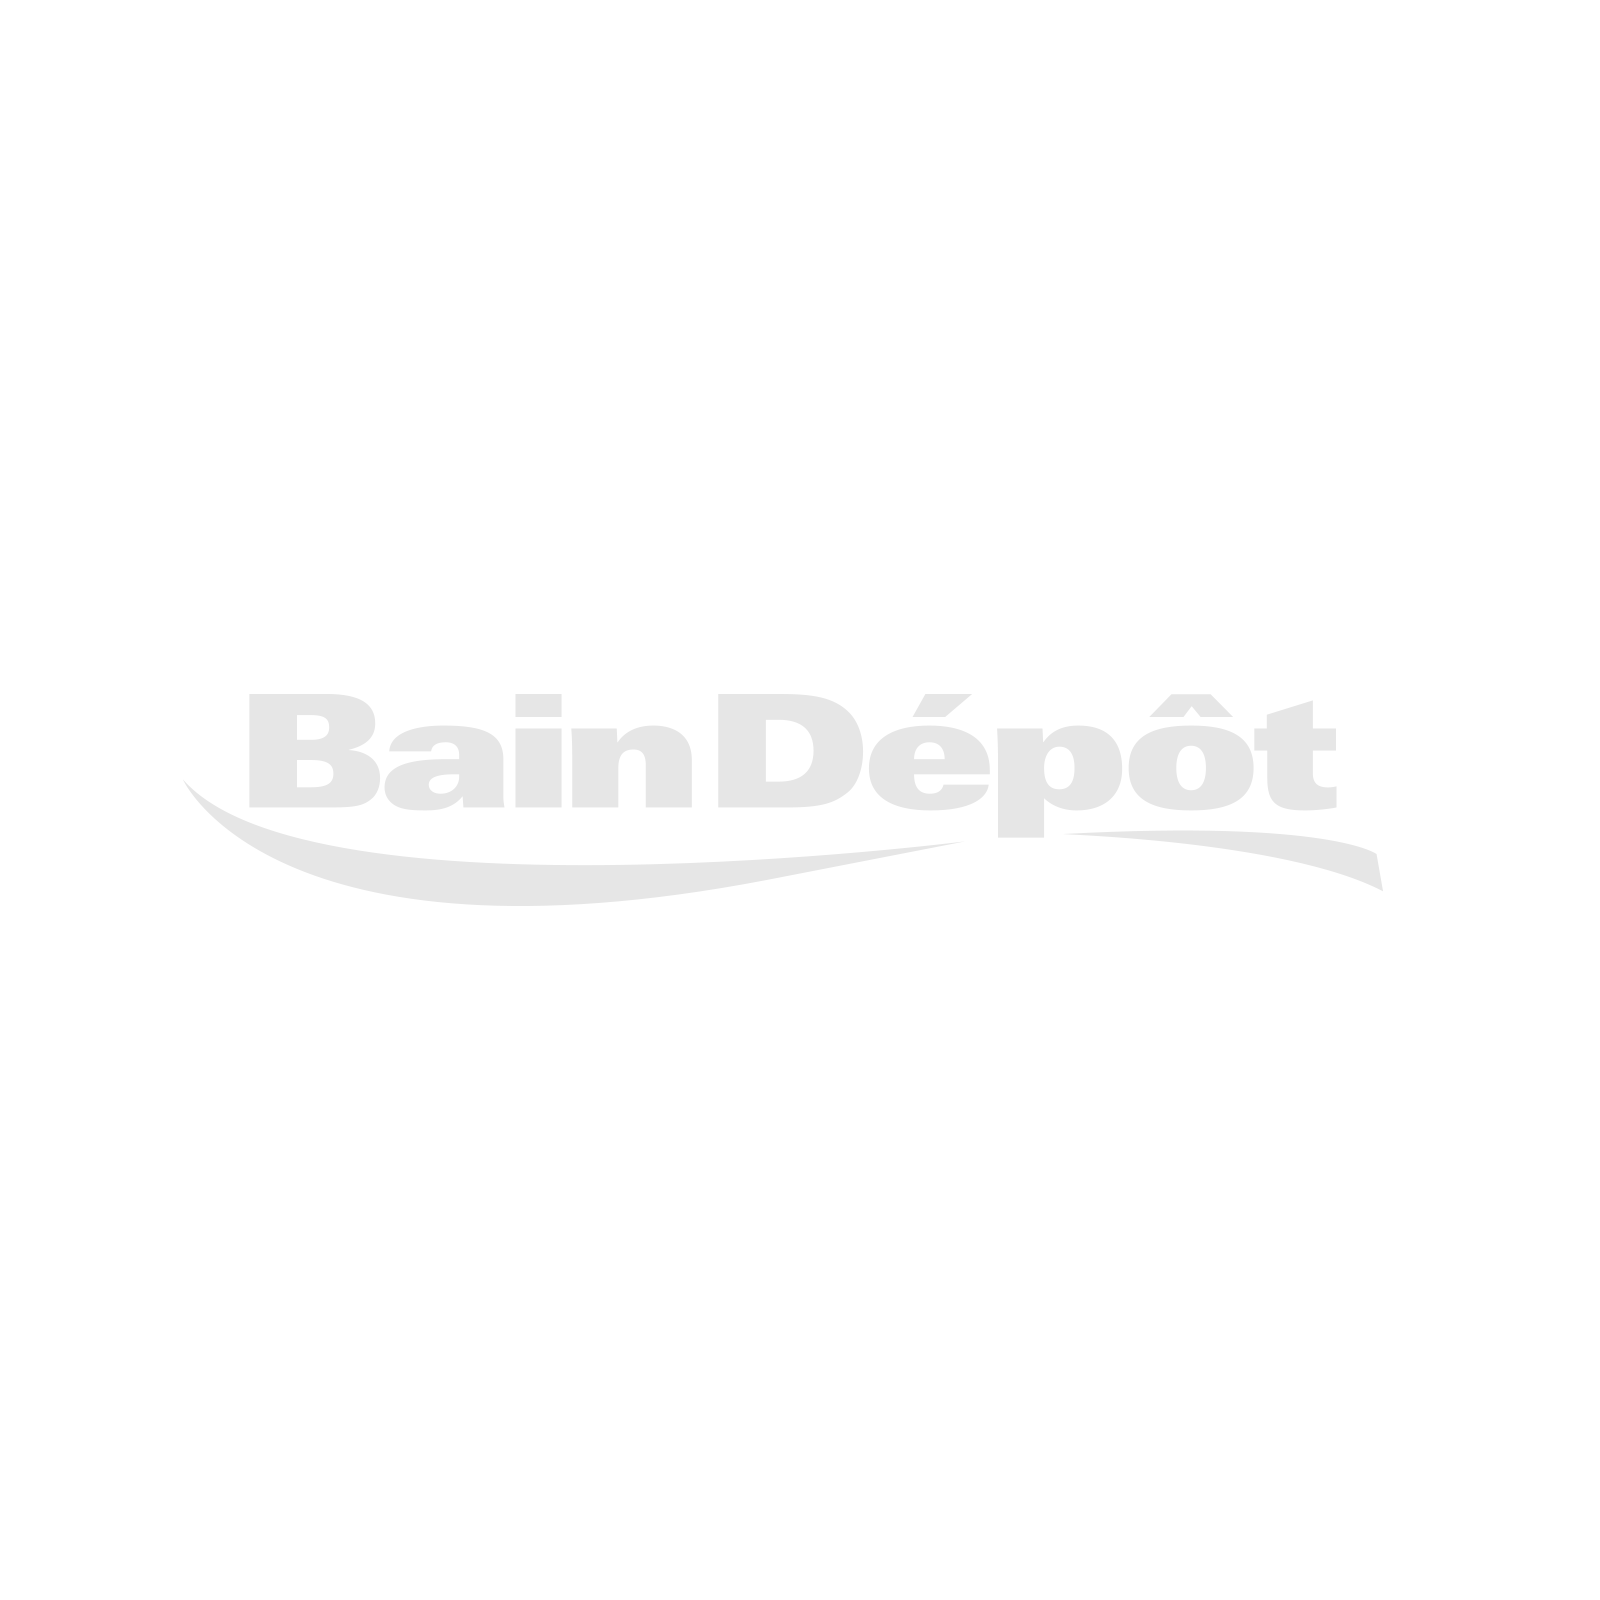 Brushed gold and white glass wall sconce with 2 LED lights